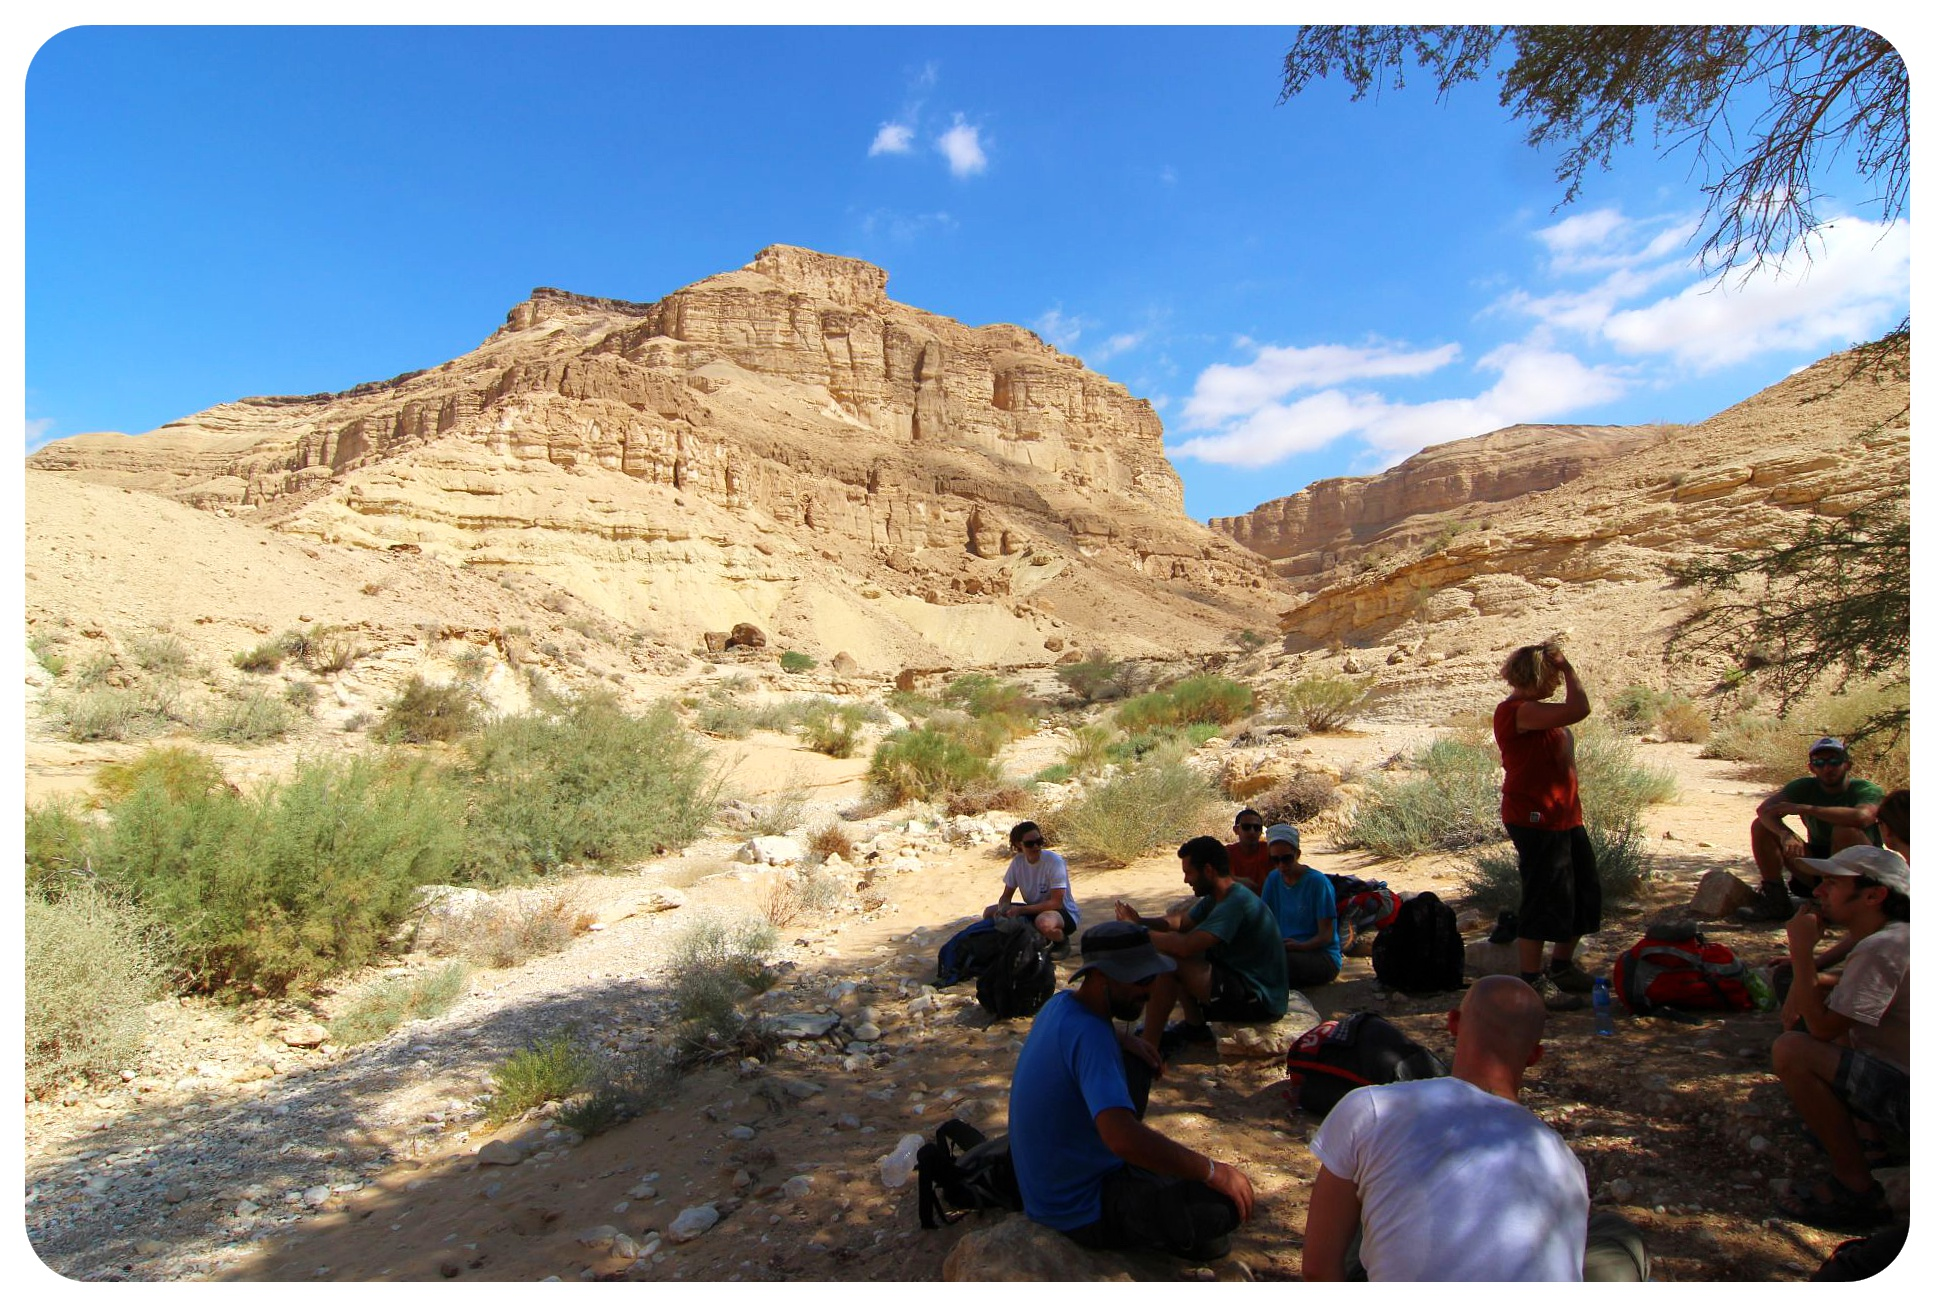 negev desert hike israel national trail hikers